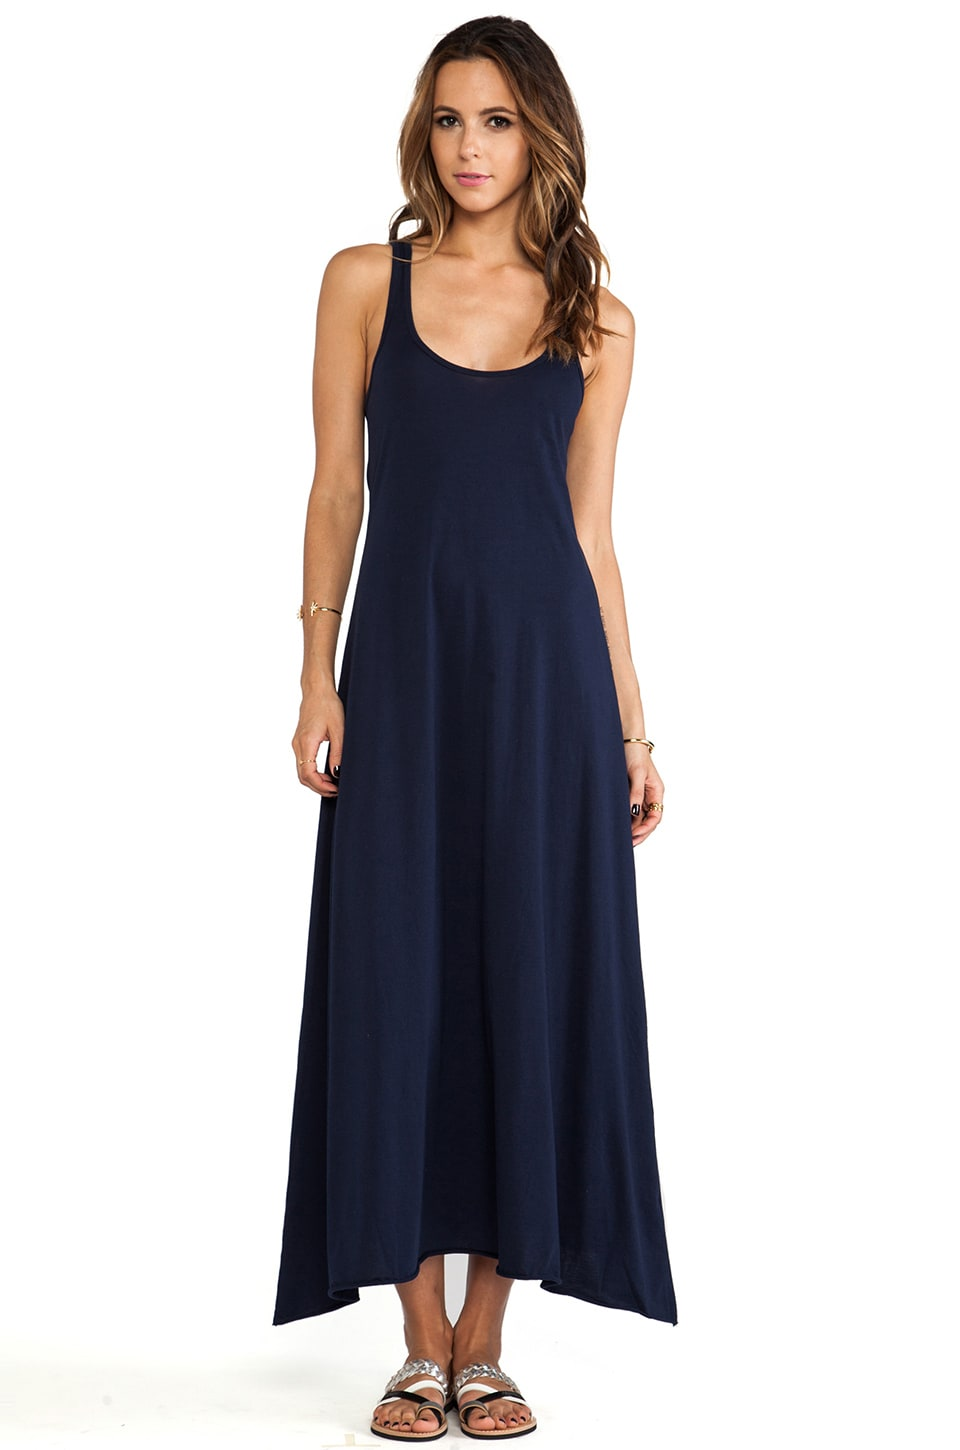 Bobi Light Weight Jersey Maxi Tank Dress in Marina